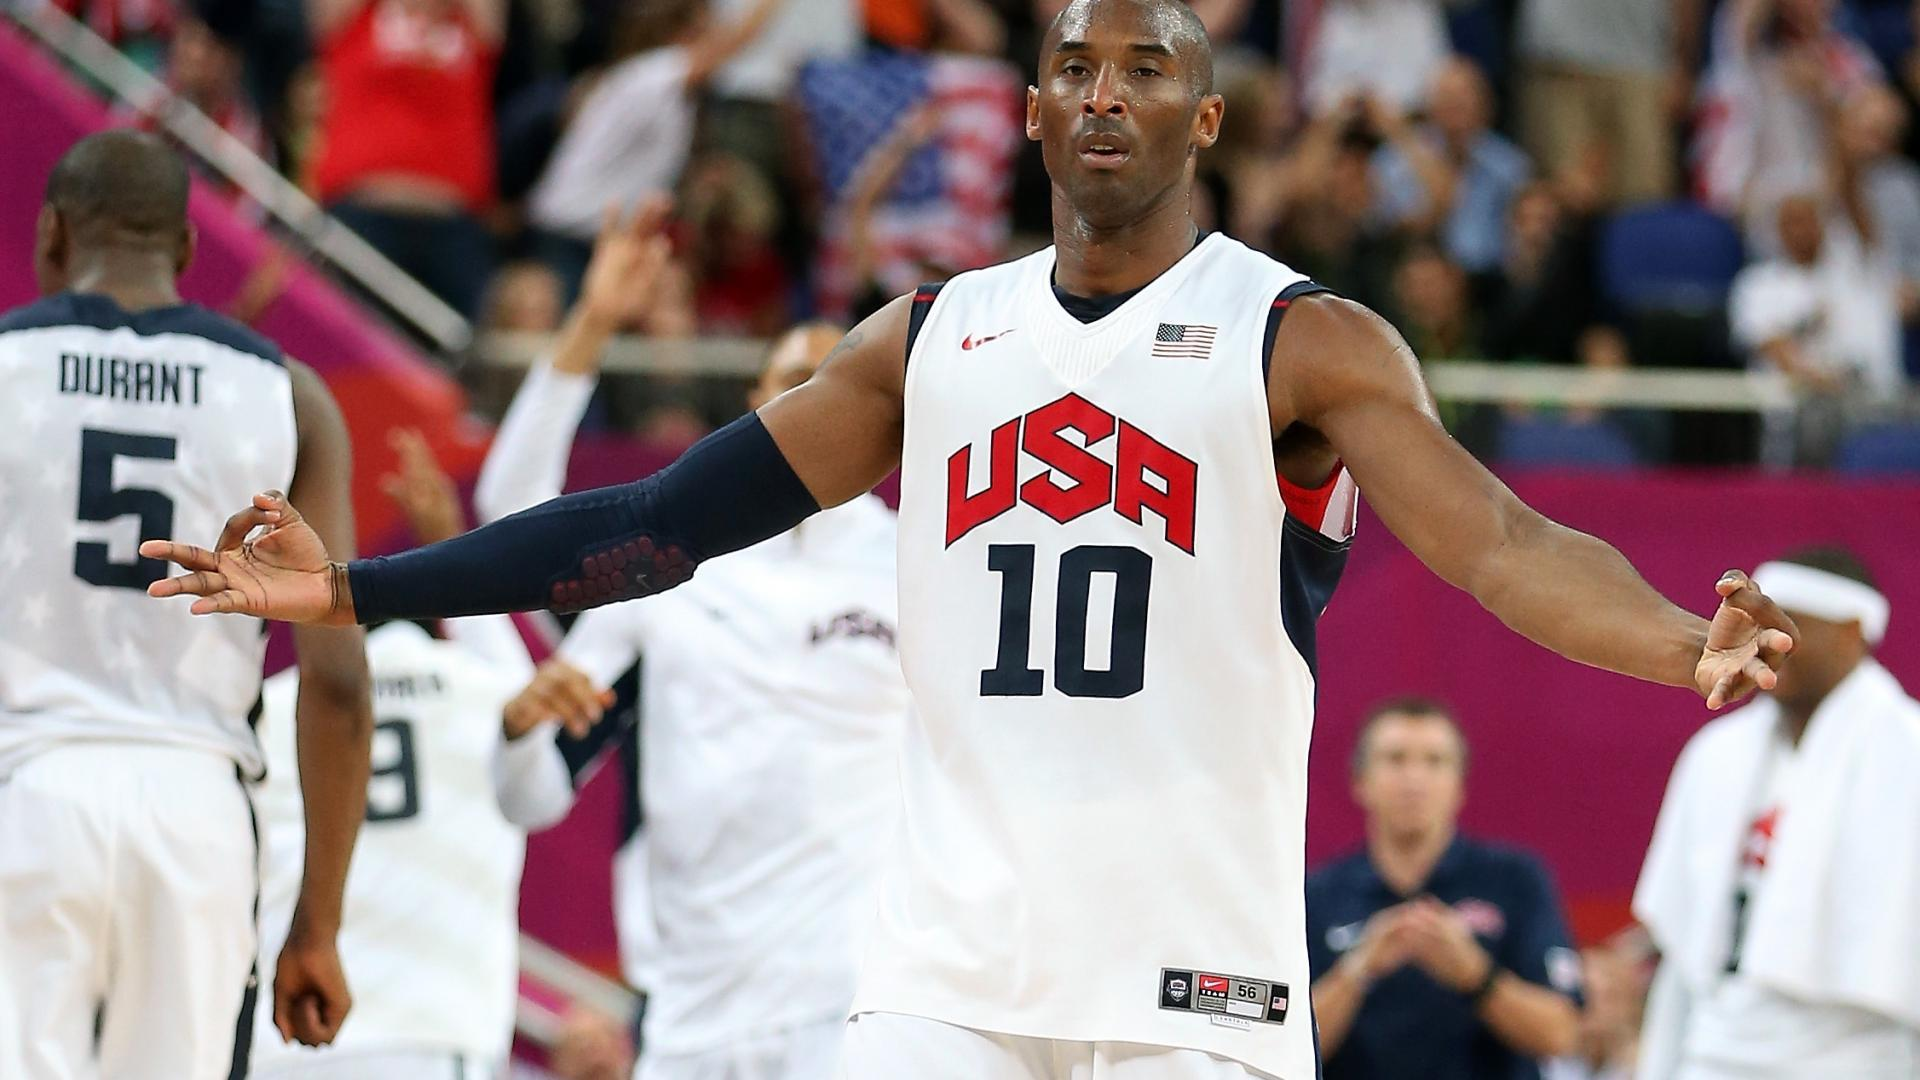 official photos dd0f1 88701 Kobe Bryant: Easy days for USA Basketball are likely 'over ...